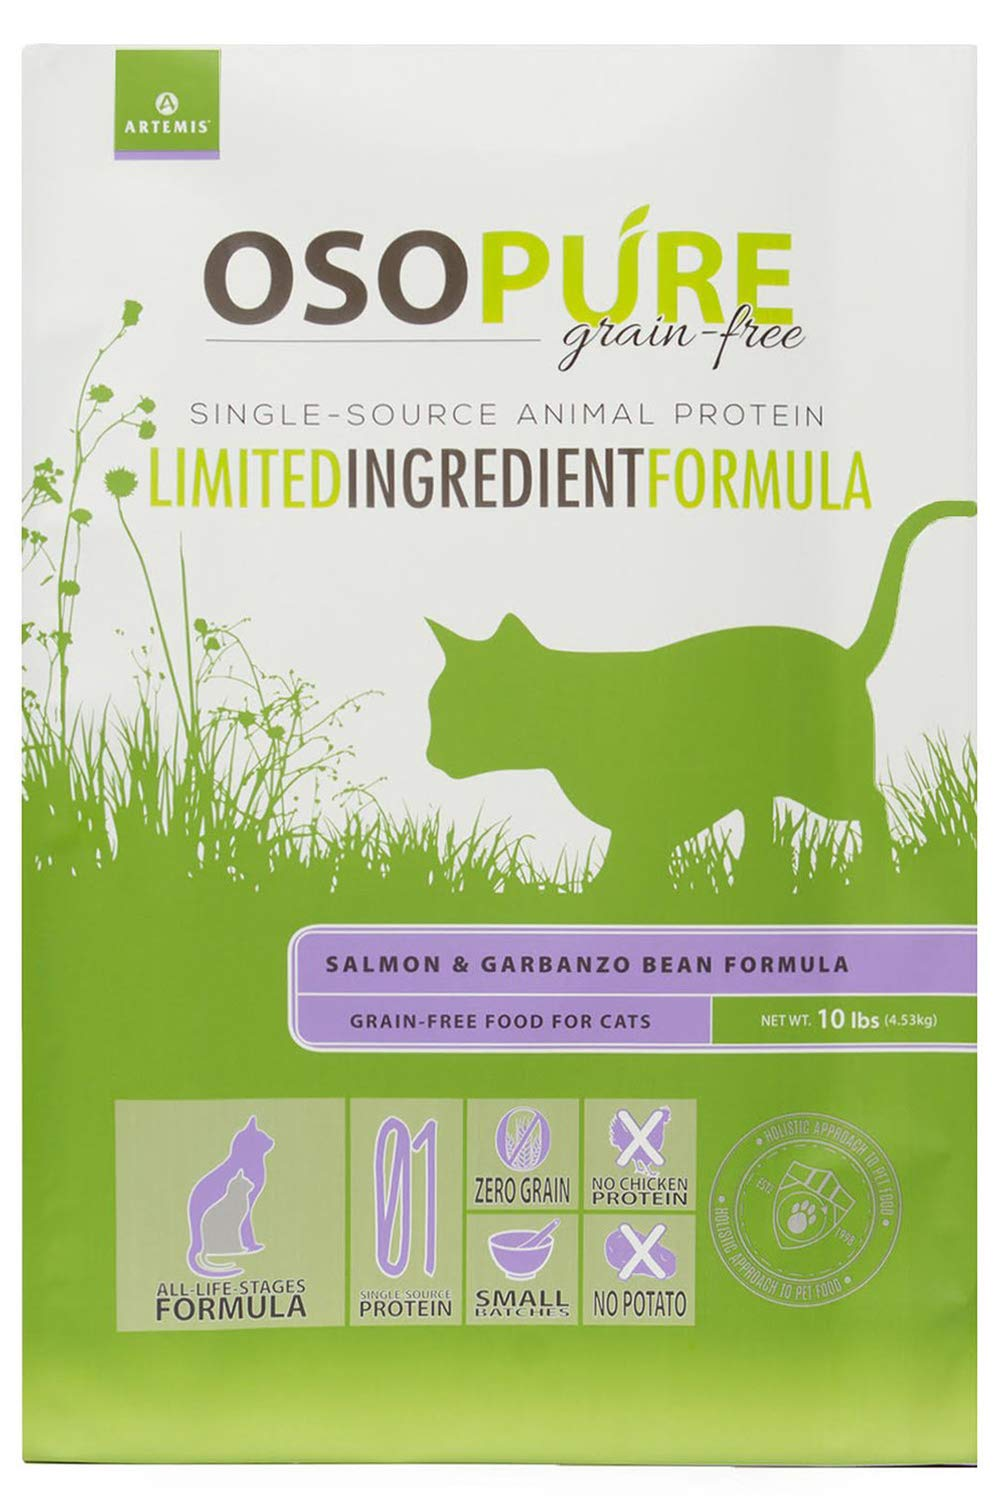 Artemis OSOPURE Dry Cat Food - Grain Free Limited Ingredient Salmon Garbanzo Bean Formula Protein Nutrition All Life Stages